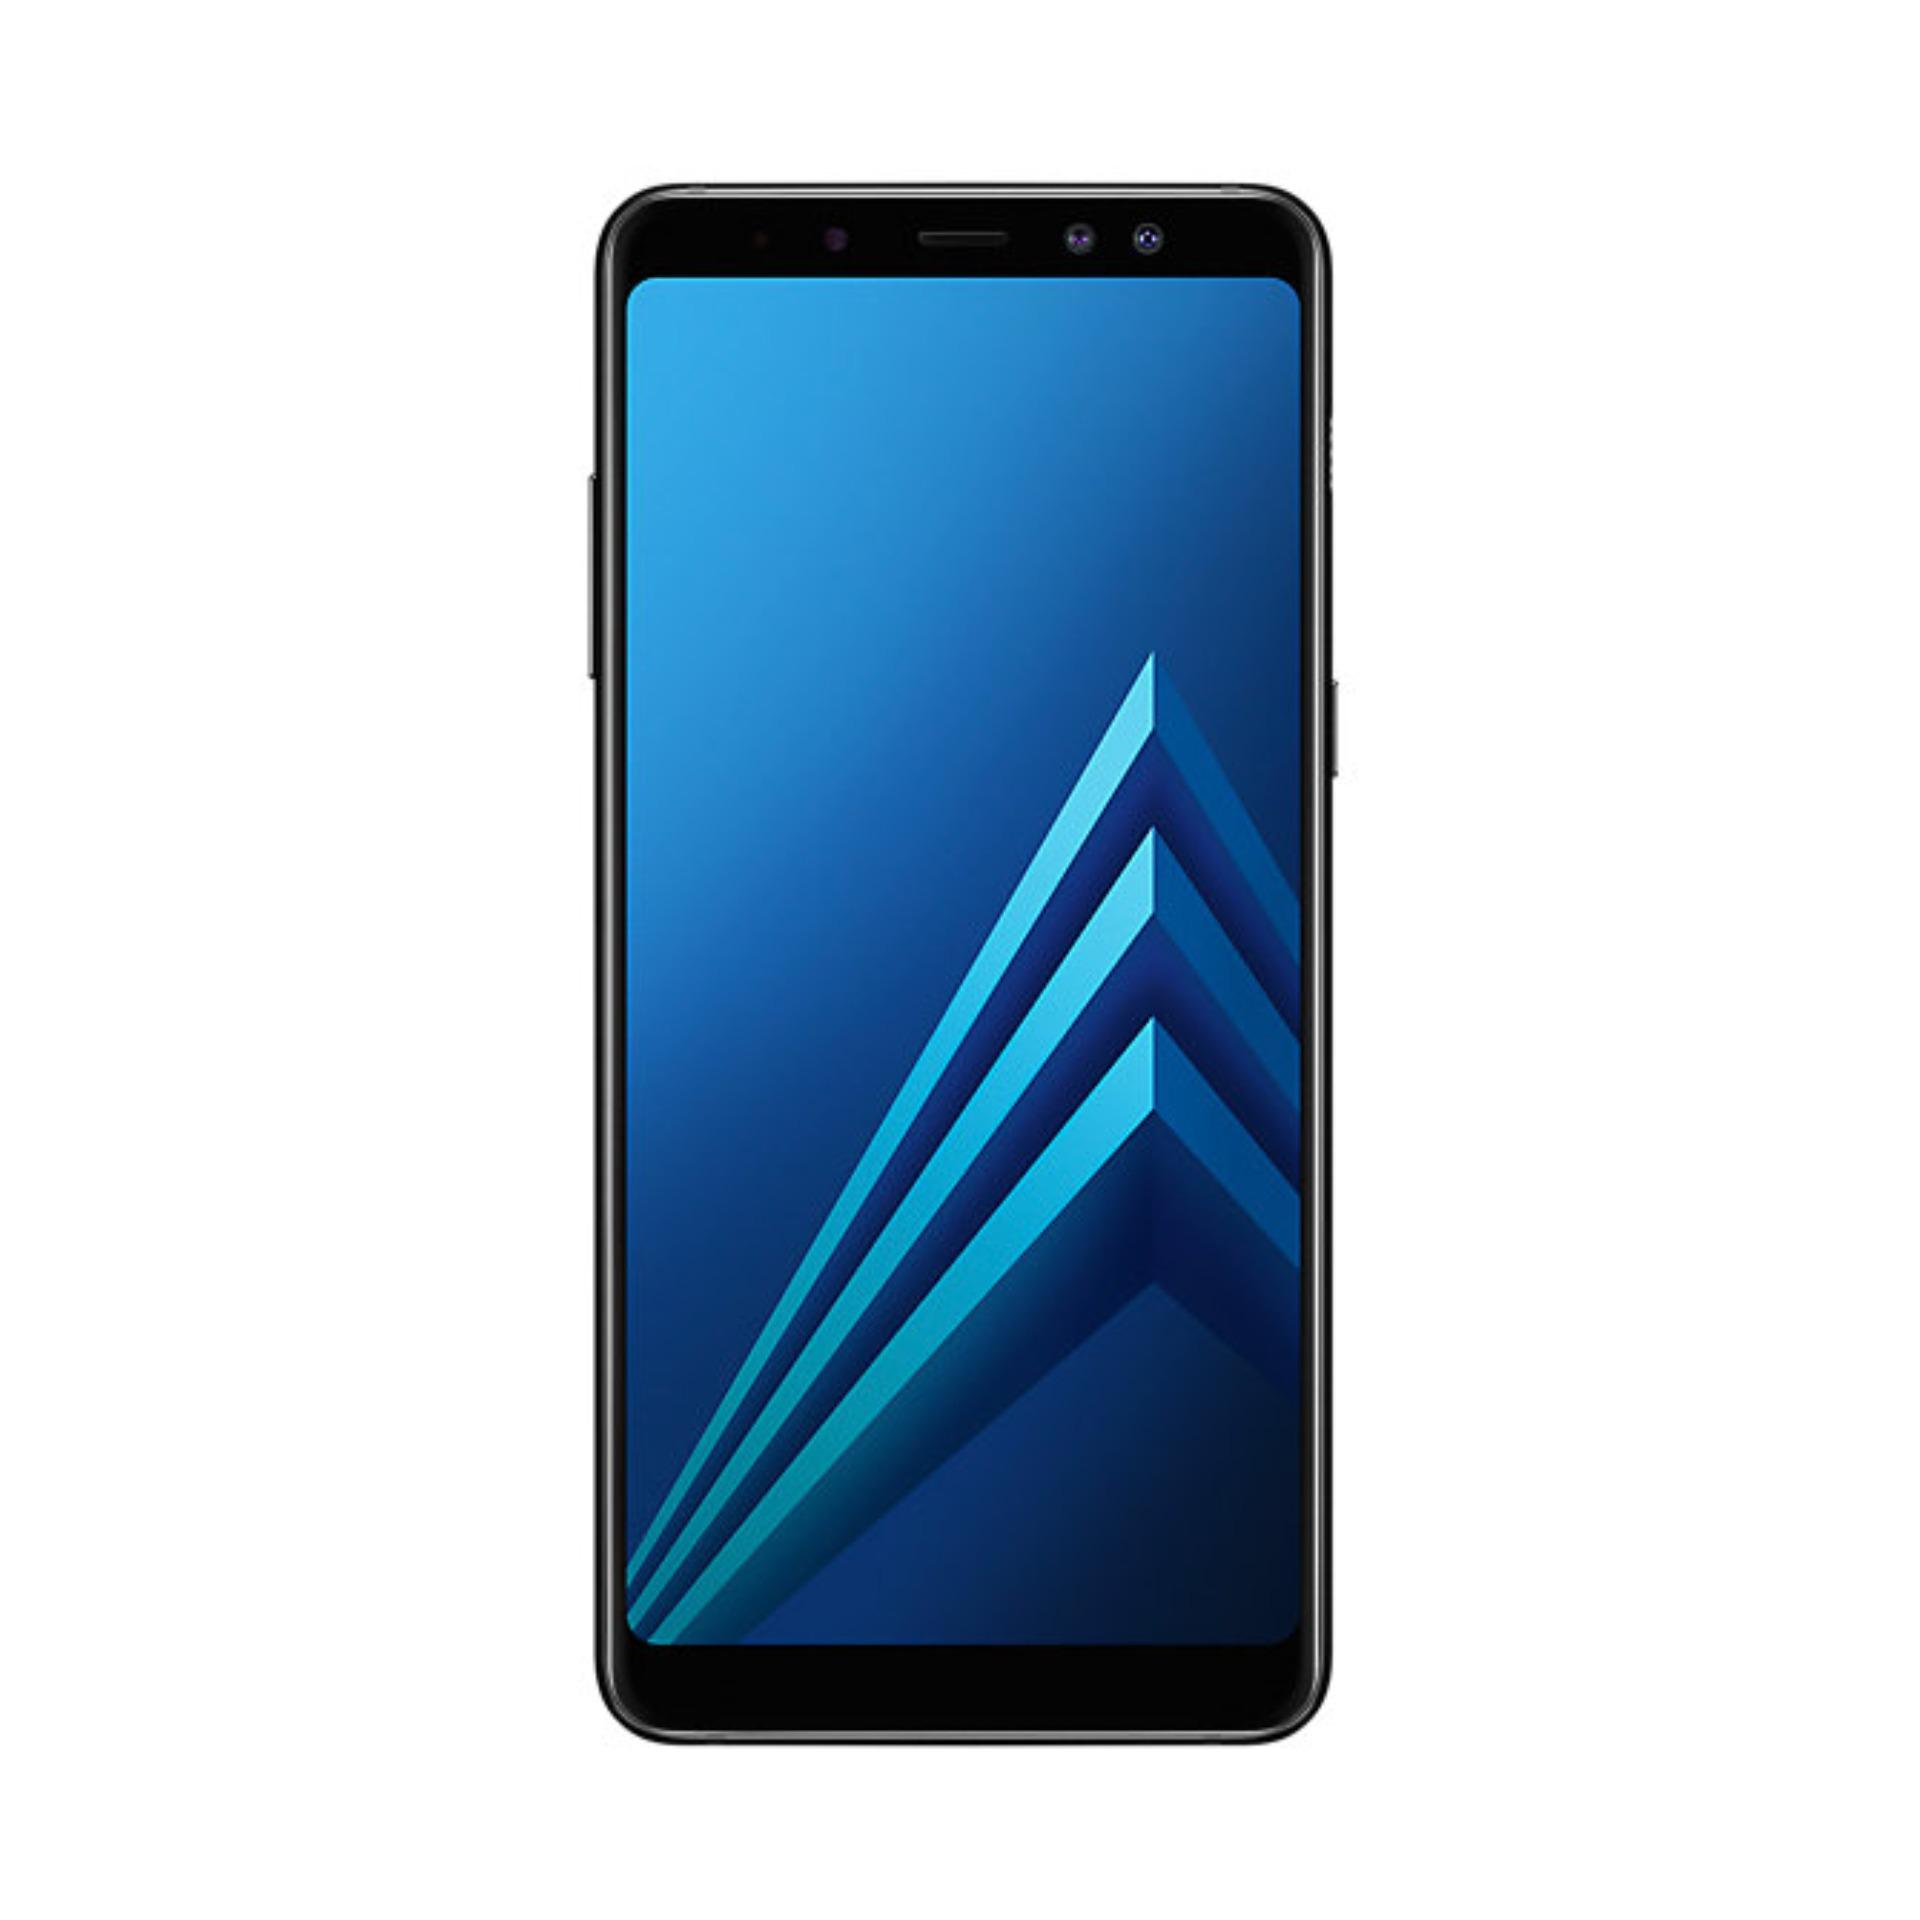 Harga Samsung Galaxy A8 Plus 2018 6 64 Gb 4G Lte Black Murah